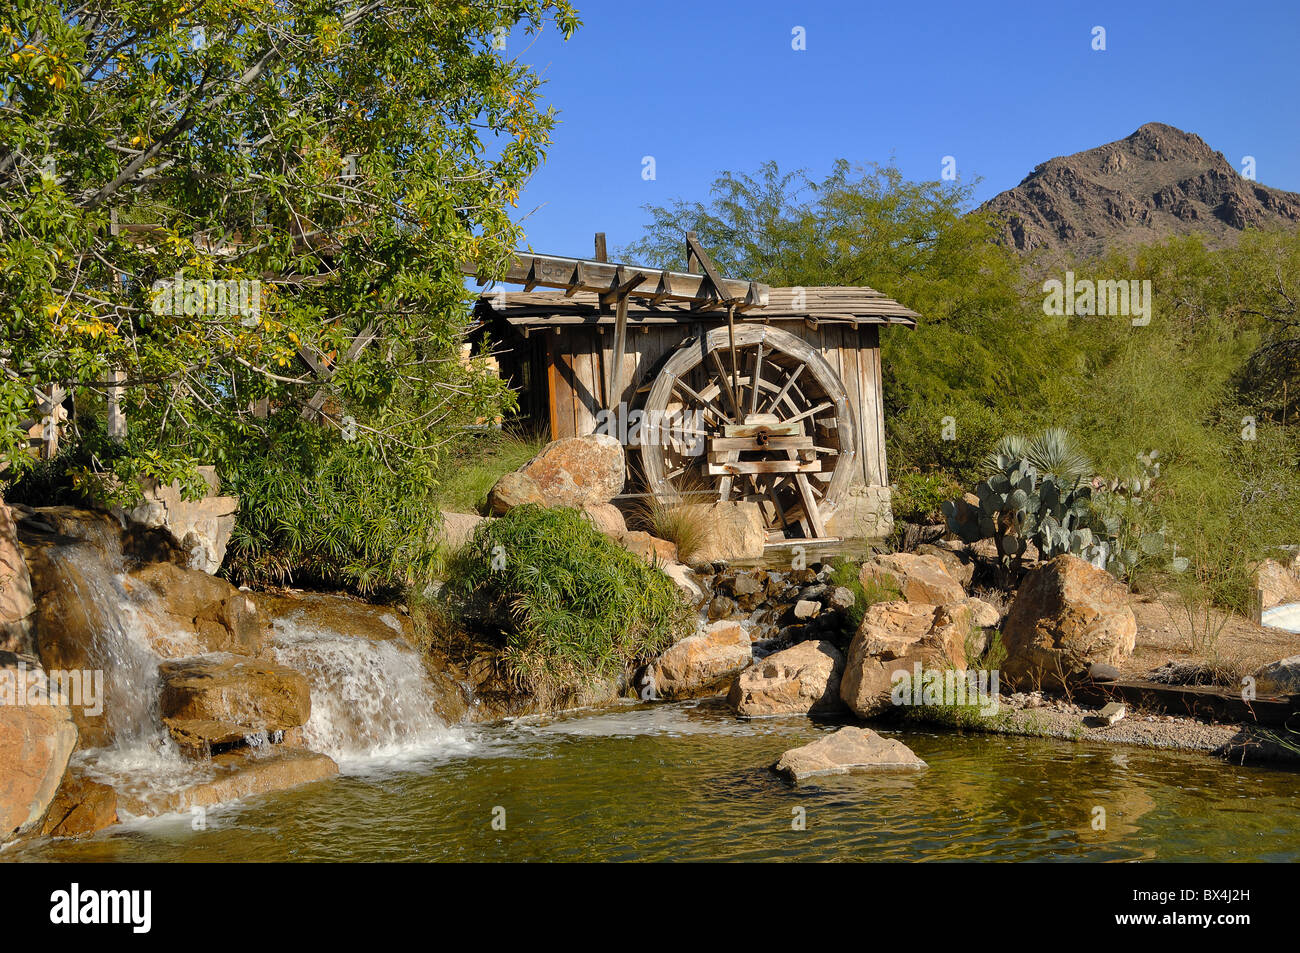 Stage-set of a watermill at The Old Film Studios, near Tucson in Arizona, USA - Stock Image